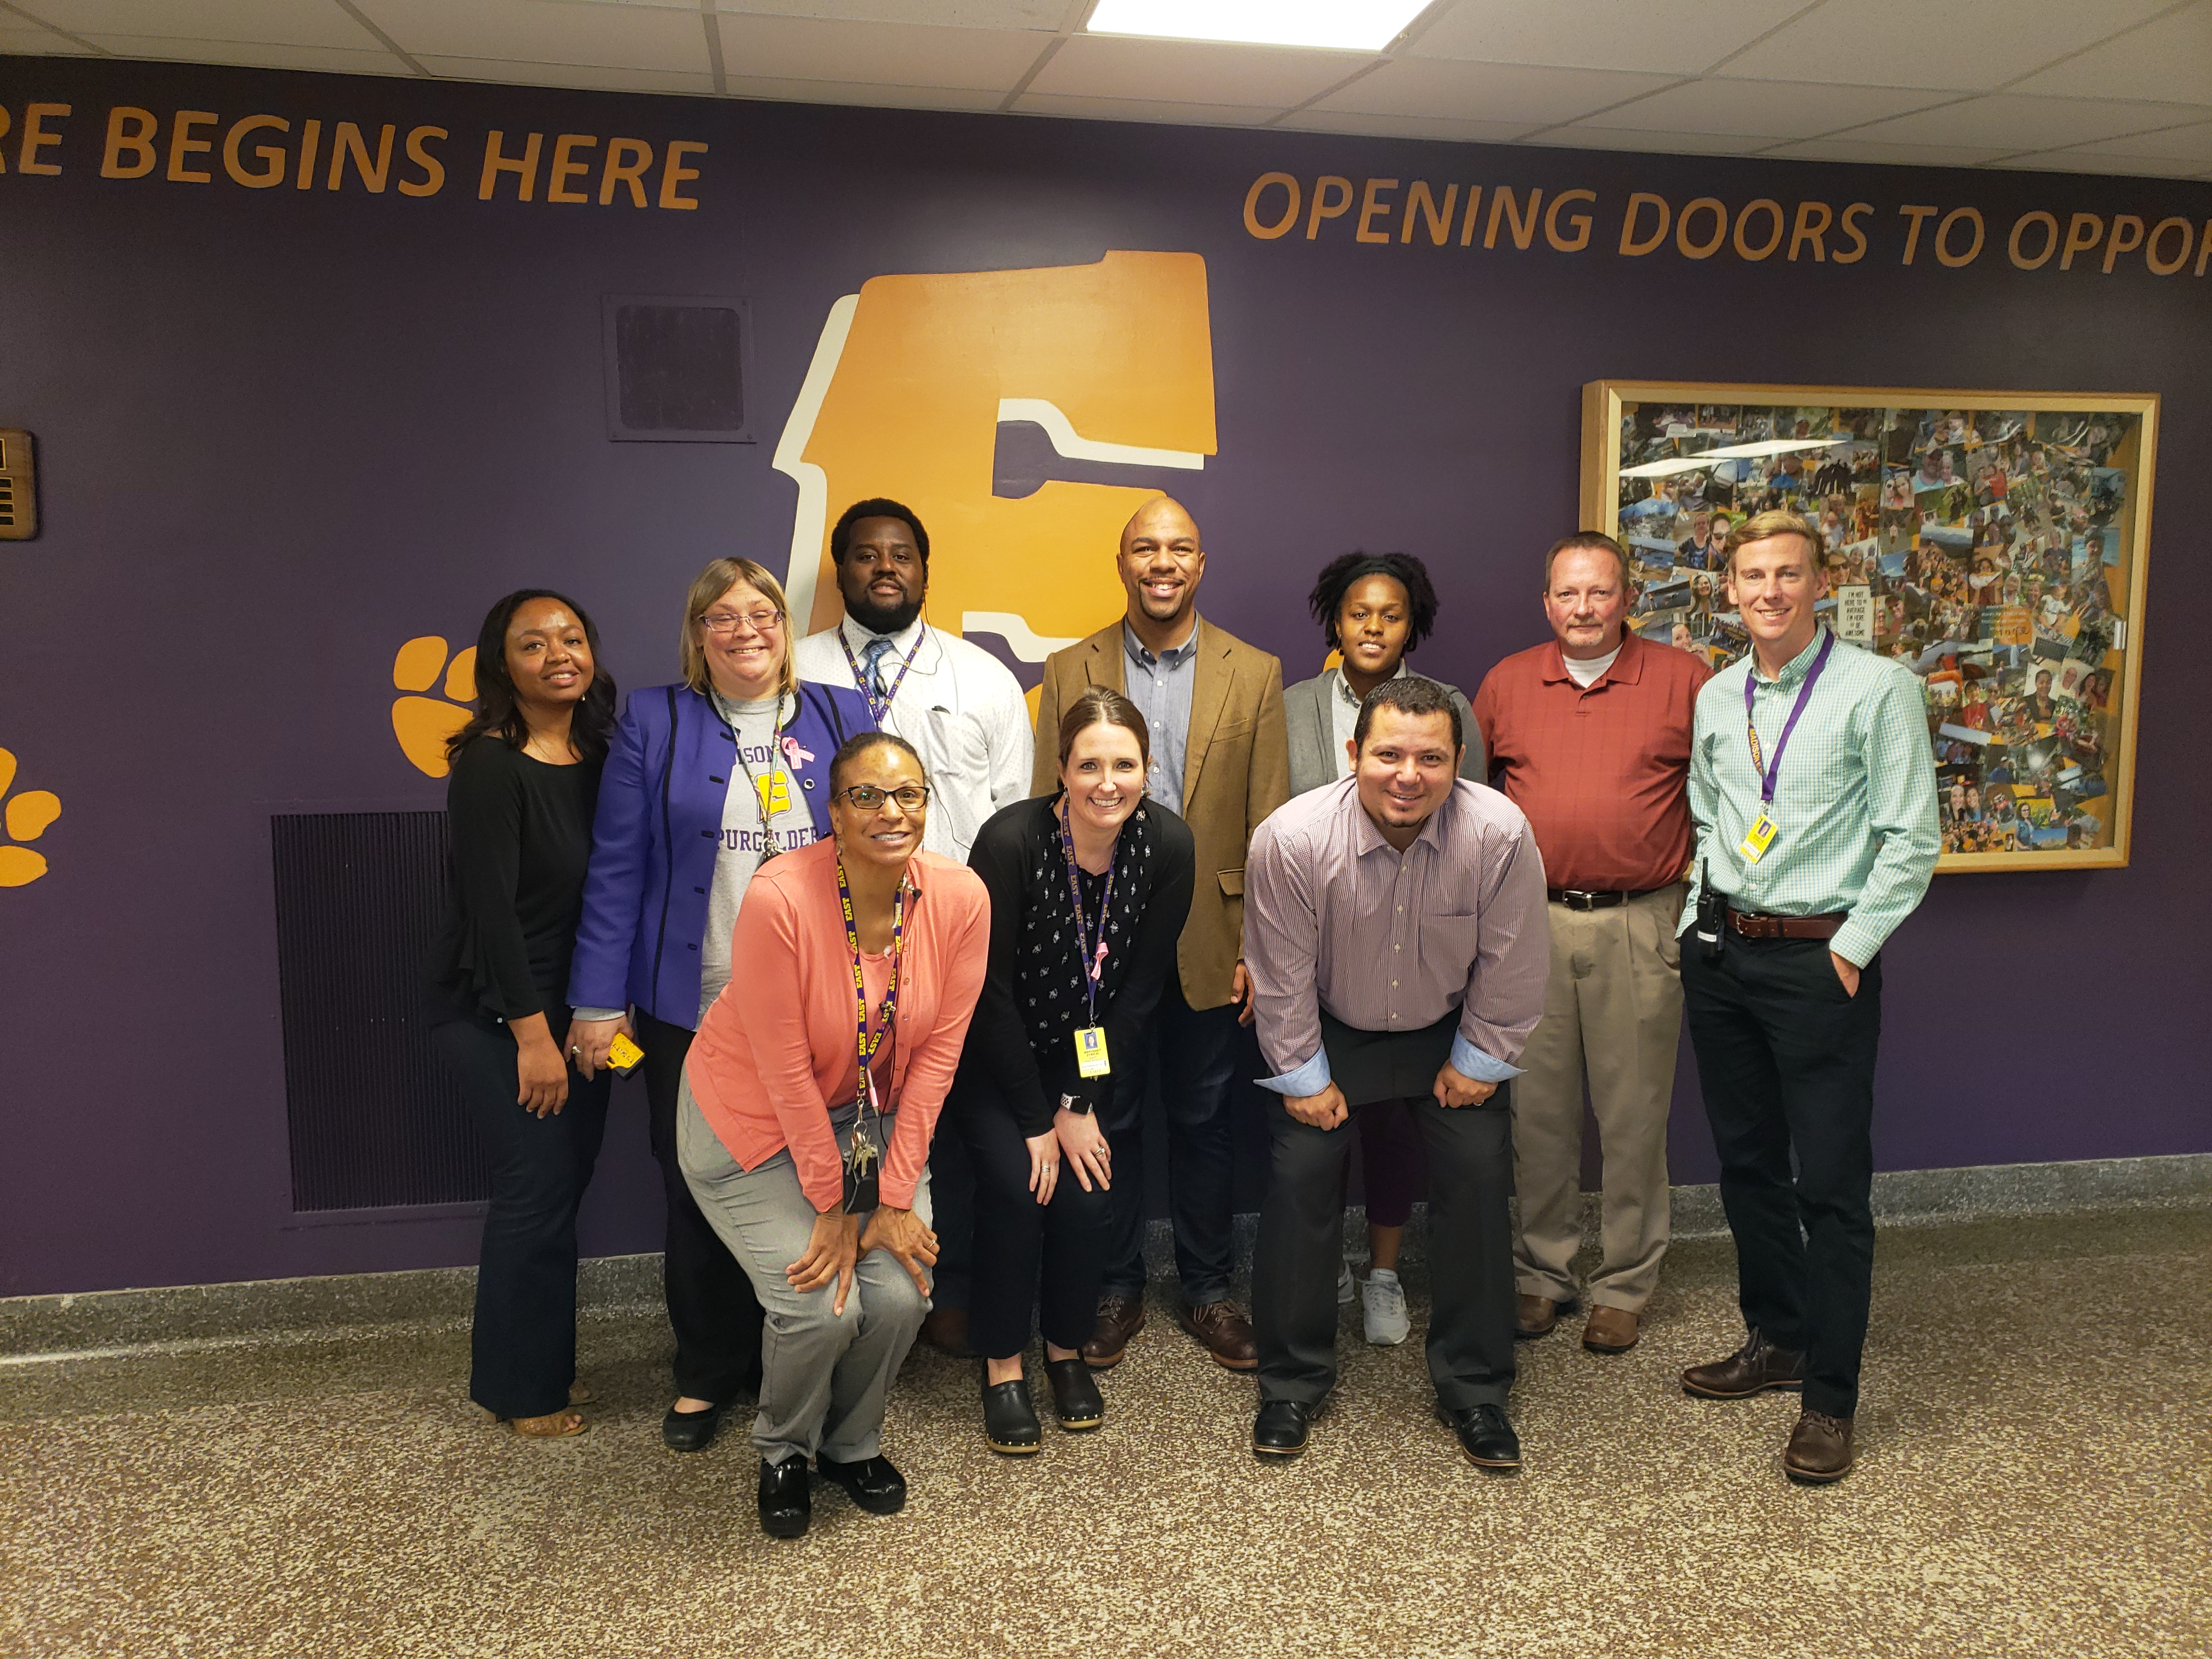 A Principal Experience - Foundation for Madison's Public Schools